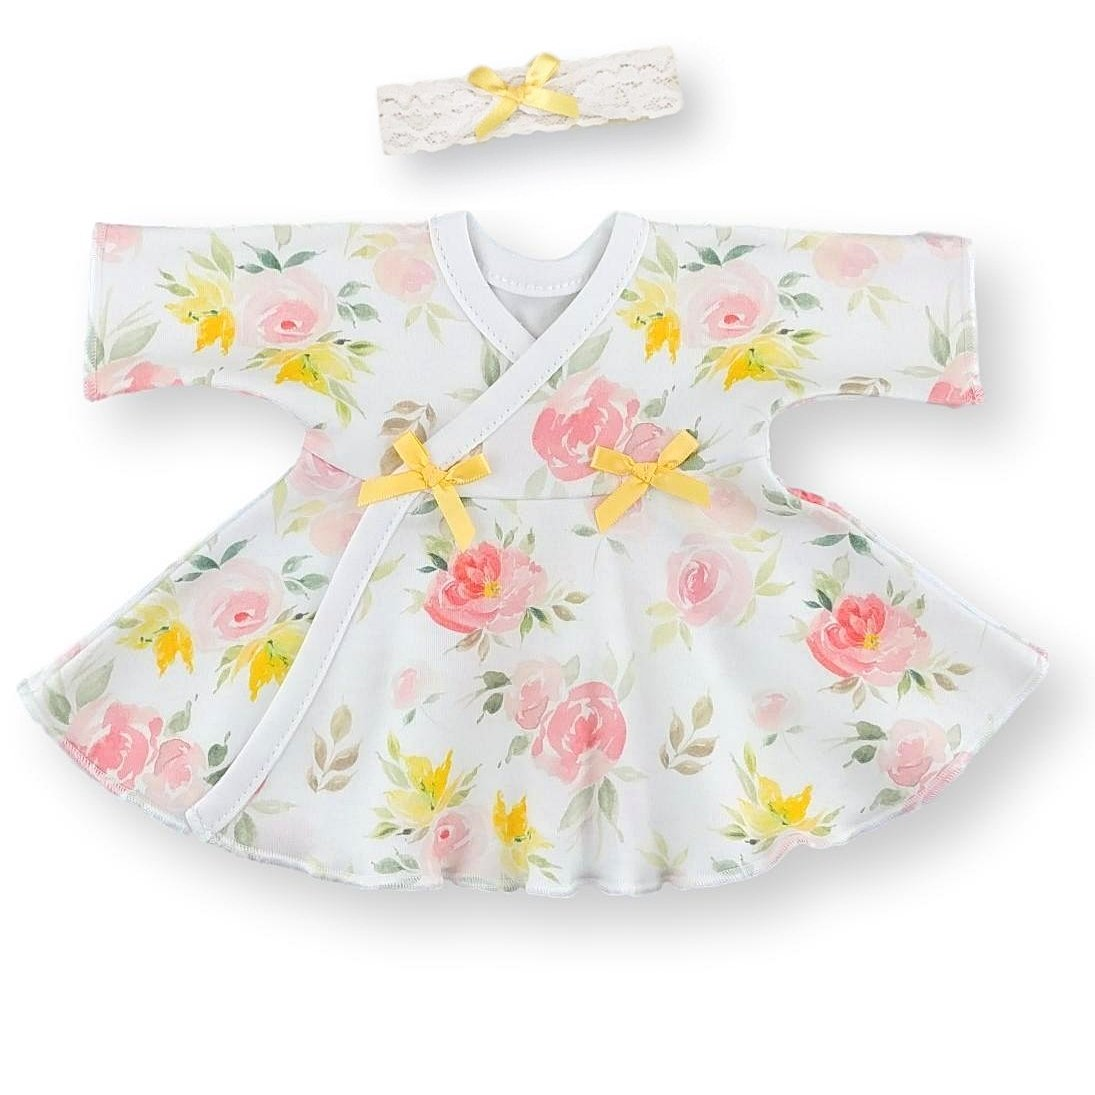 Preemie Dress + Headband // Watercolor Floral-NICU Dresses-UniqueKidz